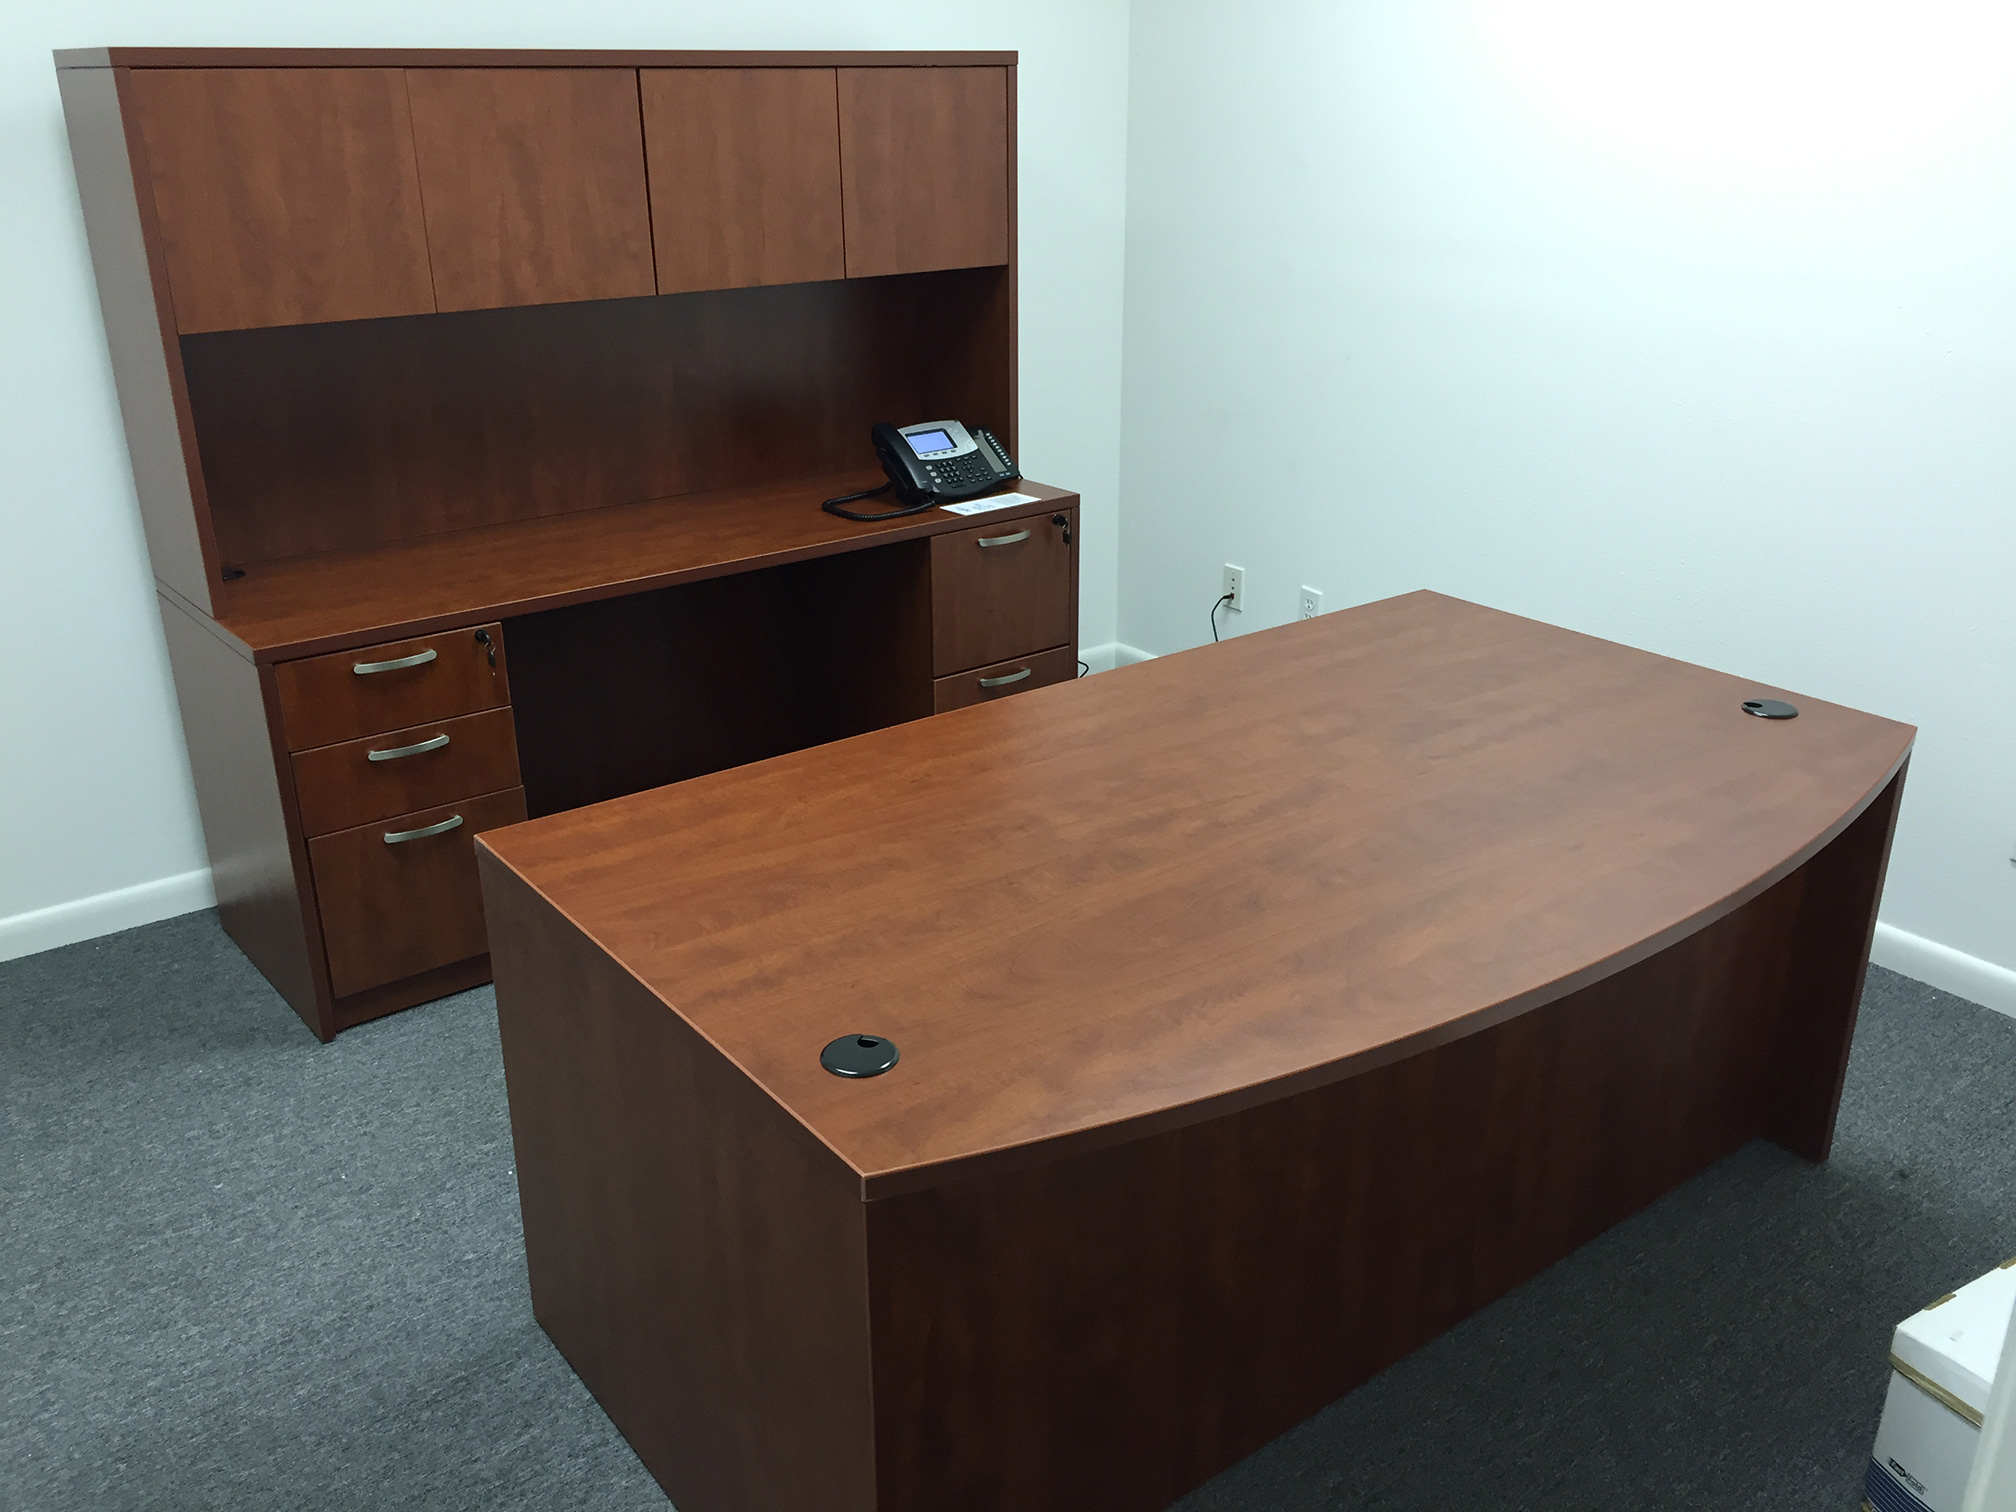 bow-front-desks-manasota-office-supplies-llc.jpg